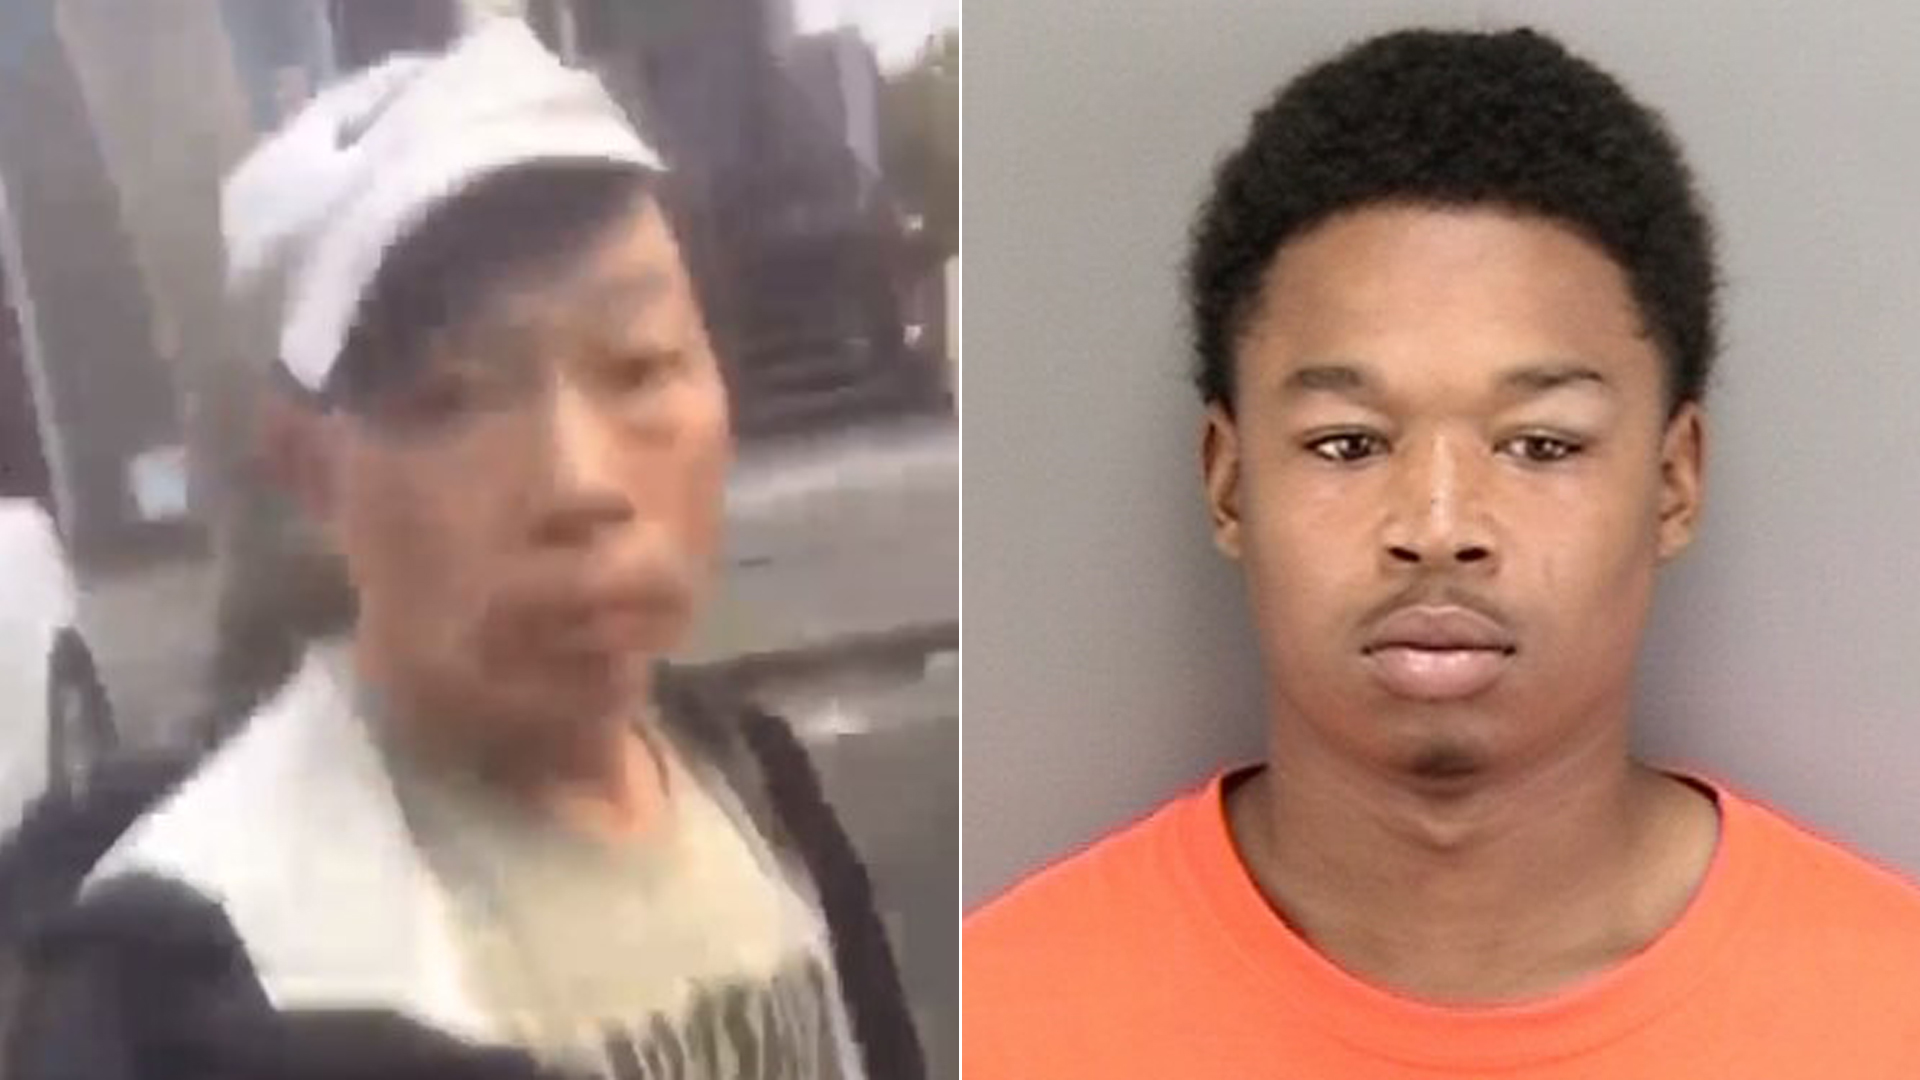 Suspect Dwayne Grayson, right, and the unidentified victim in a beating on the street on in San Francisco are seen in images released by the San Francisco Police Department.